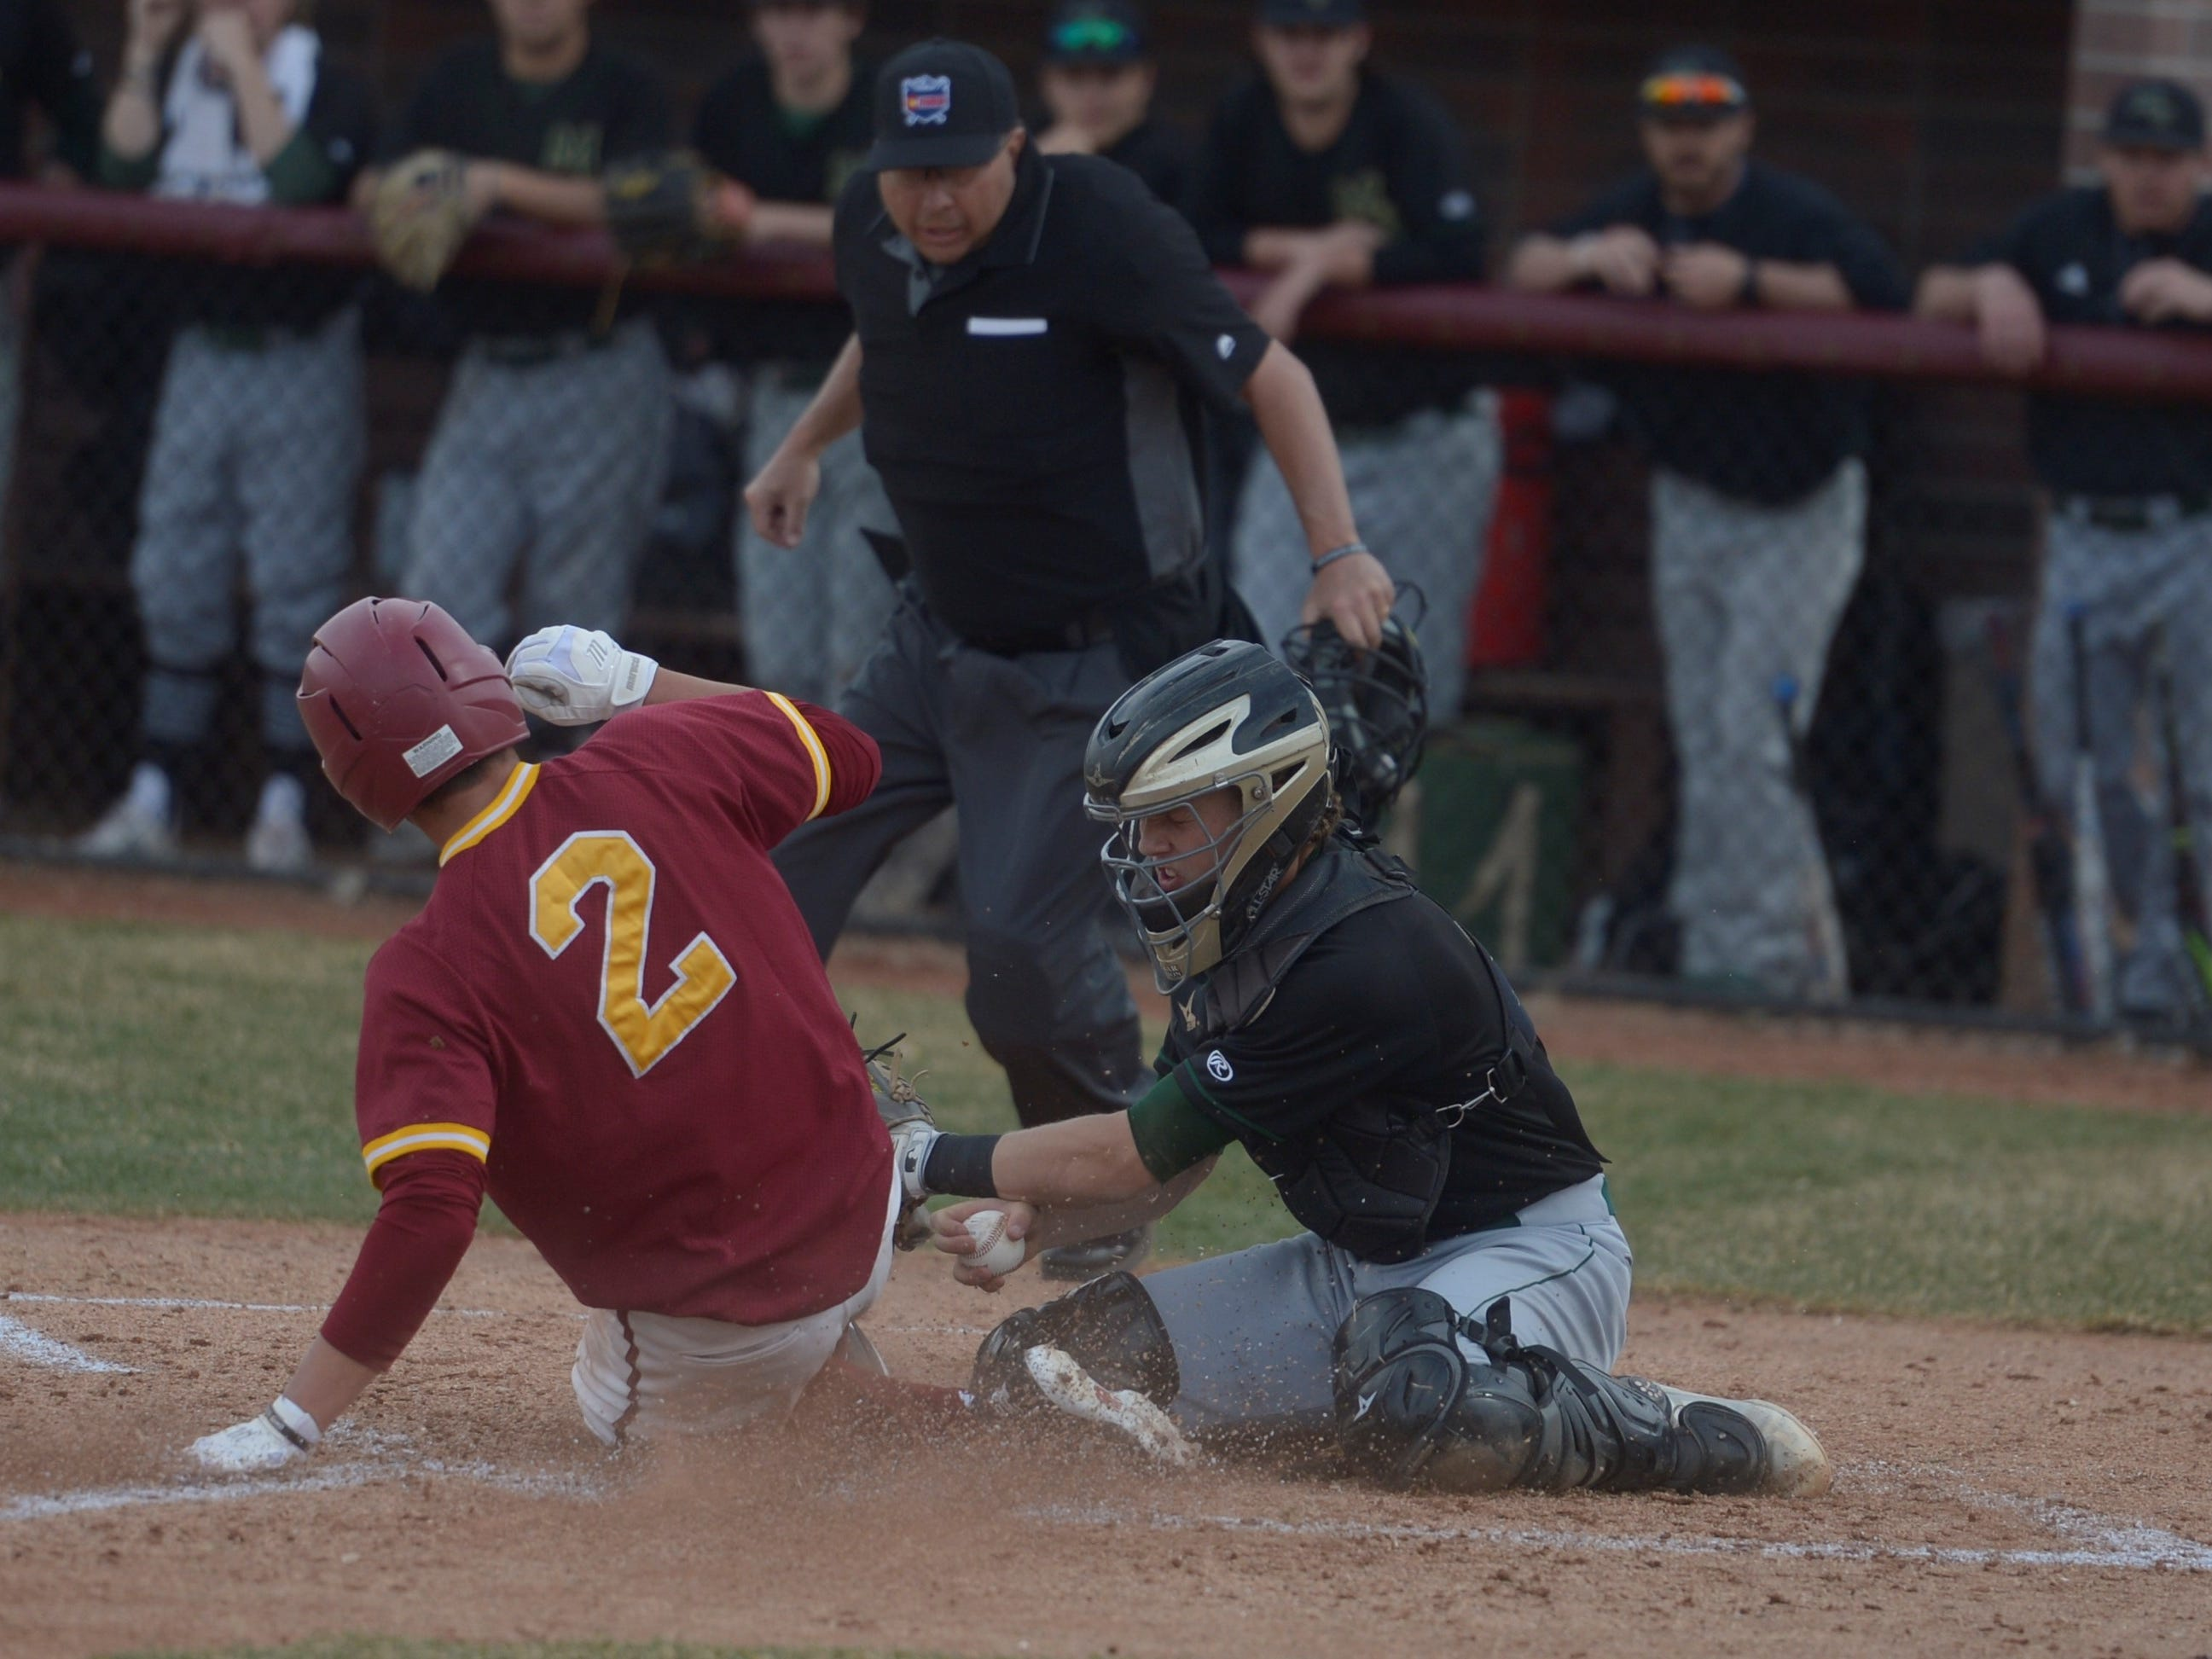 Rocky Mountain baseball player Dylan Hupfer is tagged out at home during a game Wednesday, April 3, 2019 against Mountain Vista. Mountain Vista won 10-2.